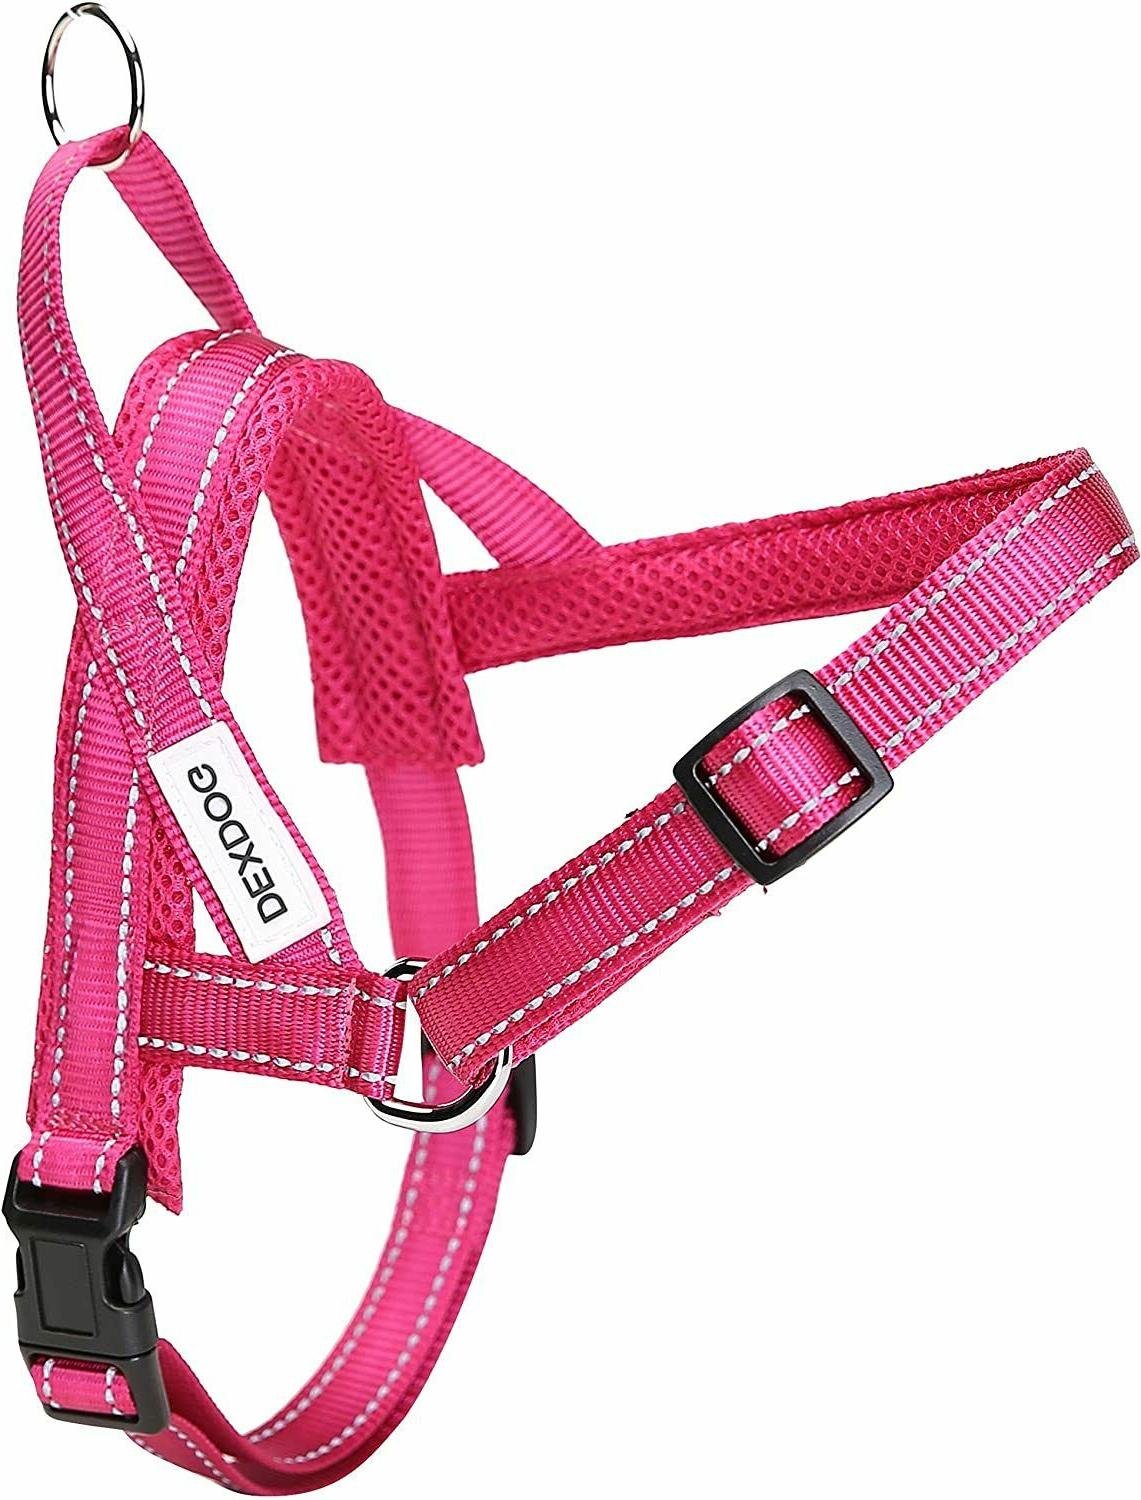 ezharness dog harness on off quick easy